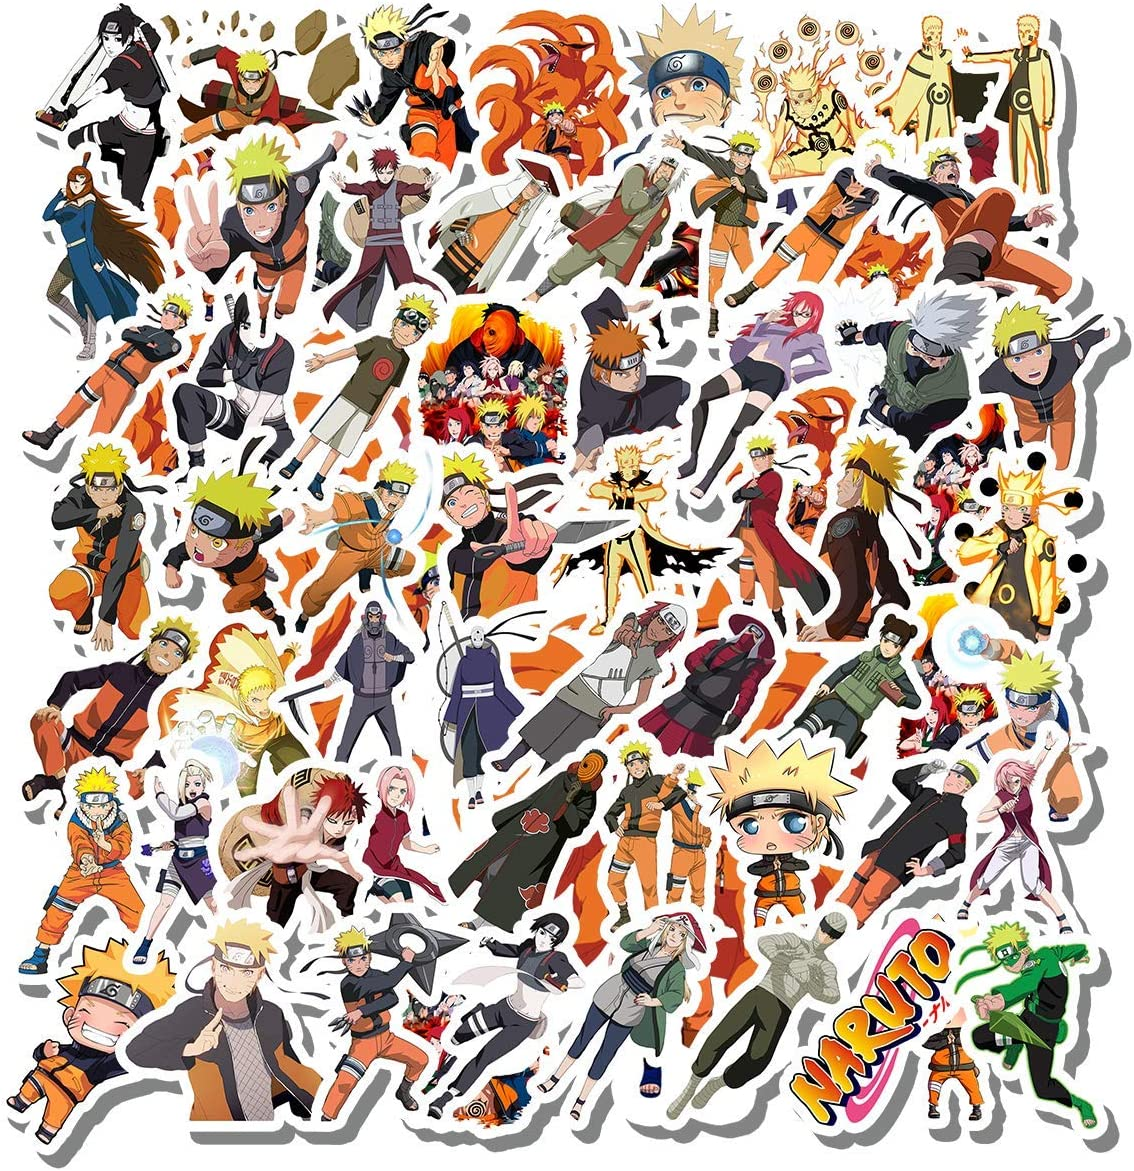 Philevathan 58 Pcs Stickers Pack Sticker Funny Wall Naruto Aesthetic 58 Vinyl Colorful Waterproof Decal for Laptop Bike Bumper Luggage Guitar Bottle Car Water Skateboard